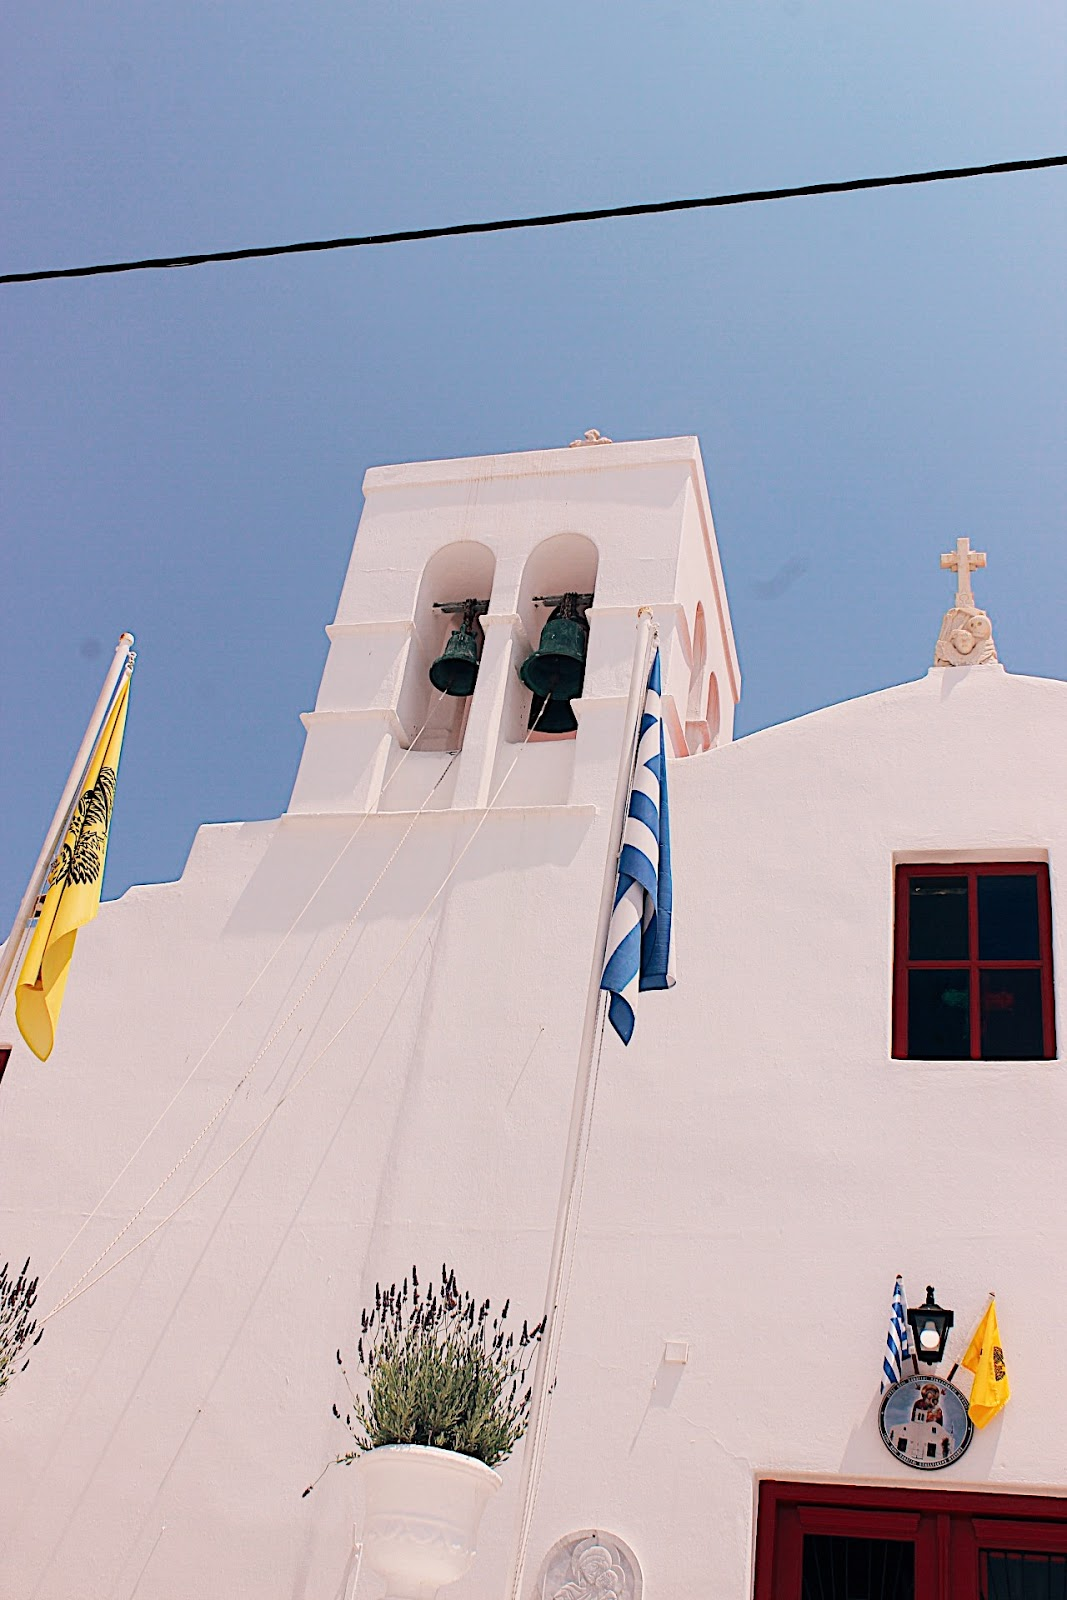 mykonos church,bougainvillea, bougainvillea mykonos, streets of mykonos, best city with bougainvillea, most famous bougainvillea, indian blog, indian blogger, top indian blog, indian luxury blog, uk blog, british blog, london blog, delhi blogger, delhi travel blogger, indian travel blog,  indian fashion blogger, top travel destination, top travel destination 2017, lonely planet recommend, travel to europe, europe travel info, summer holiday, where to go this summer, beach holiday, top beach destination, greece, greek holiday, greece travel, mykonos, mykonos travel guide, tips for mykonos, mykonos travel info, places to see in mykonos, places to eat in mykonos, best places for sunset mykonos, best views mykonos, prepare for greece travel, greece vacation, best beach mykonos, where to shop mykonos, what to eat mykonos,